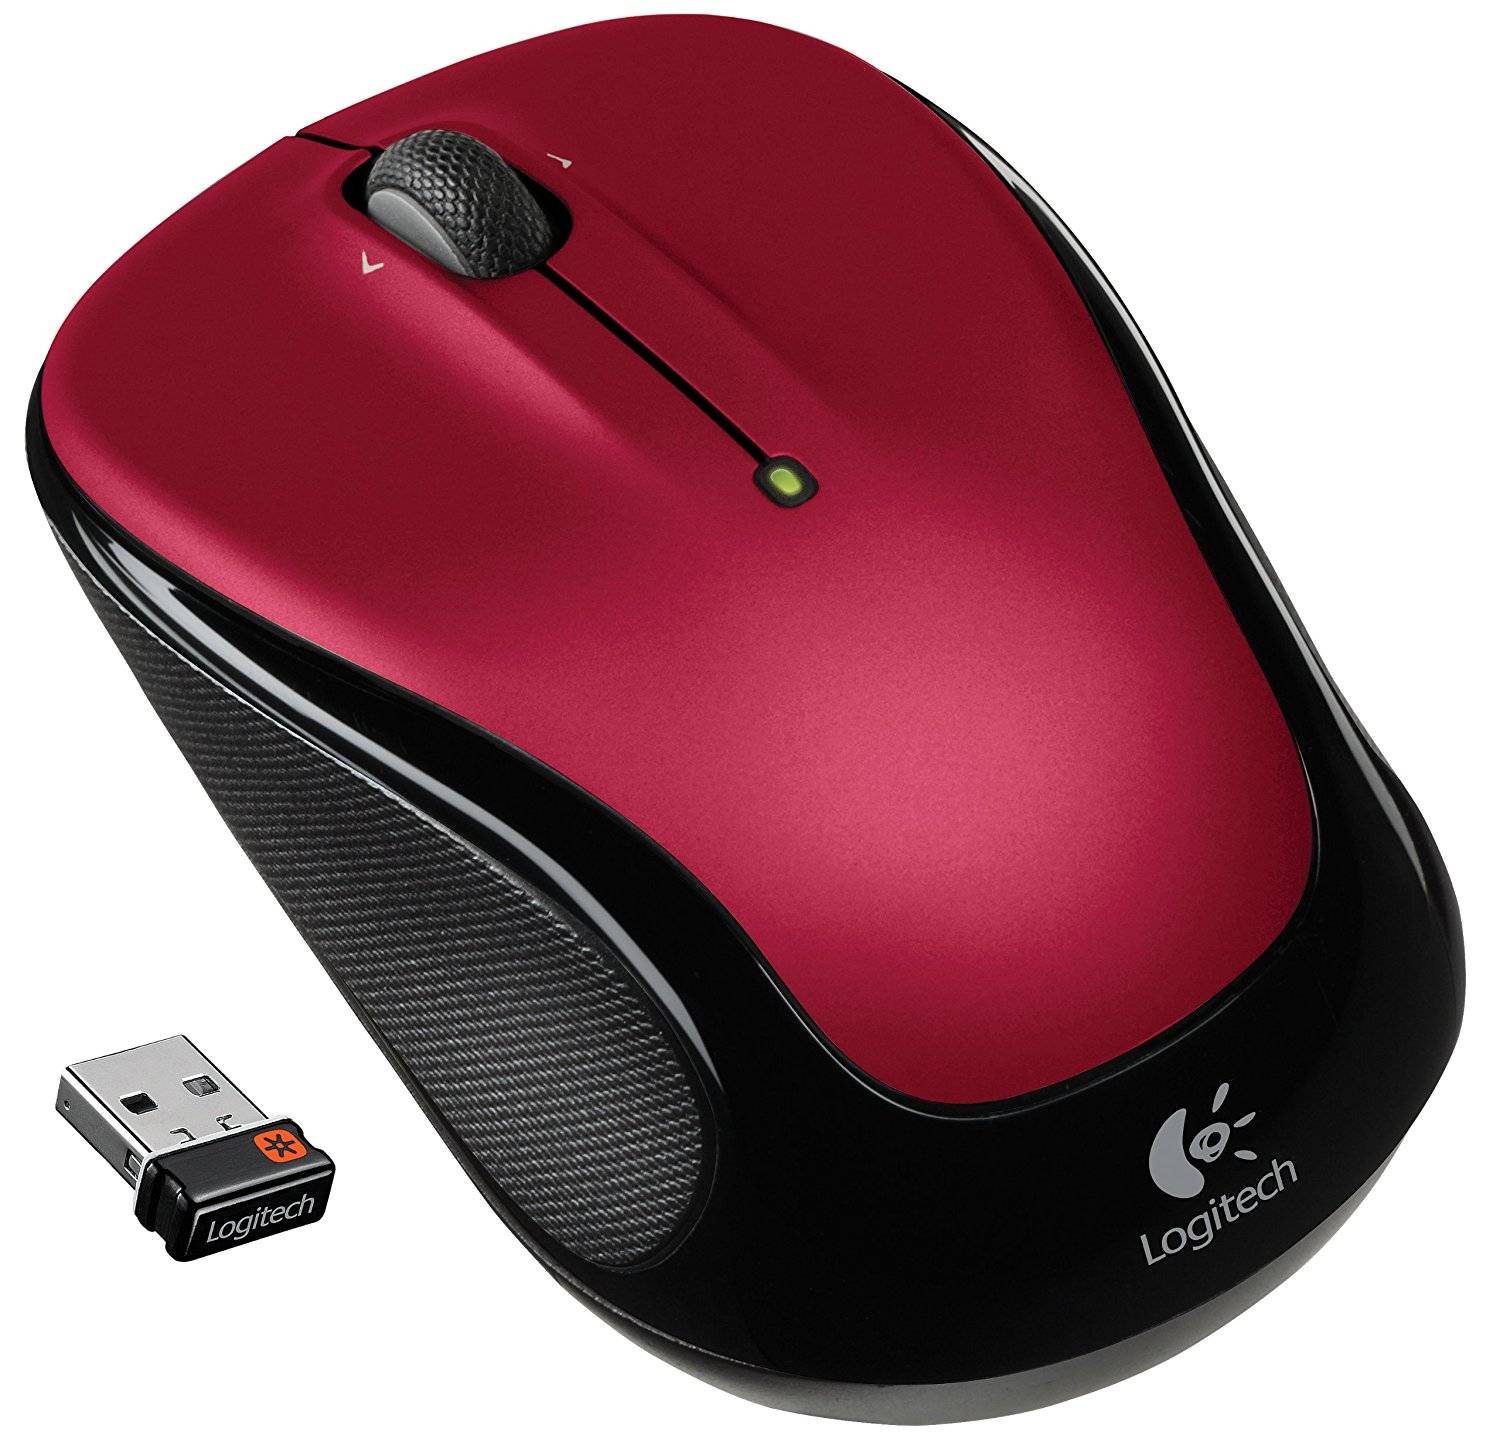 small mouse, portable Logitech Scrolling Red for laptop computer Wireless mouse